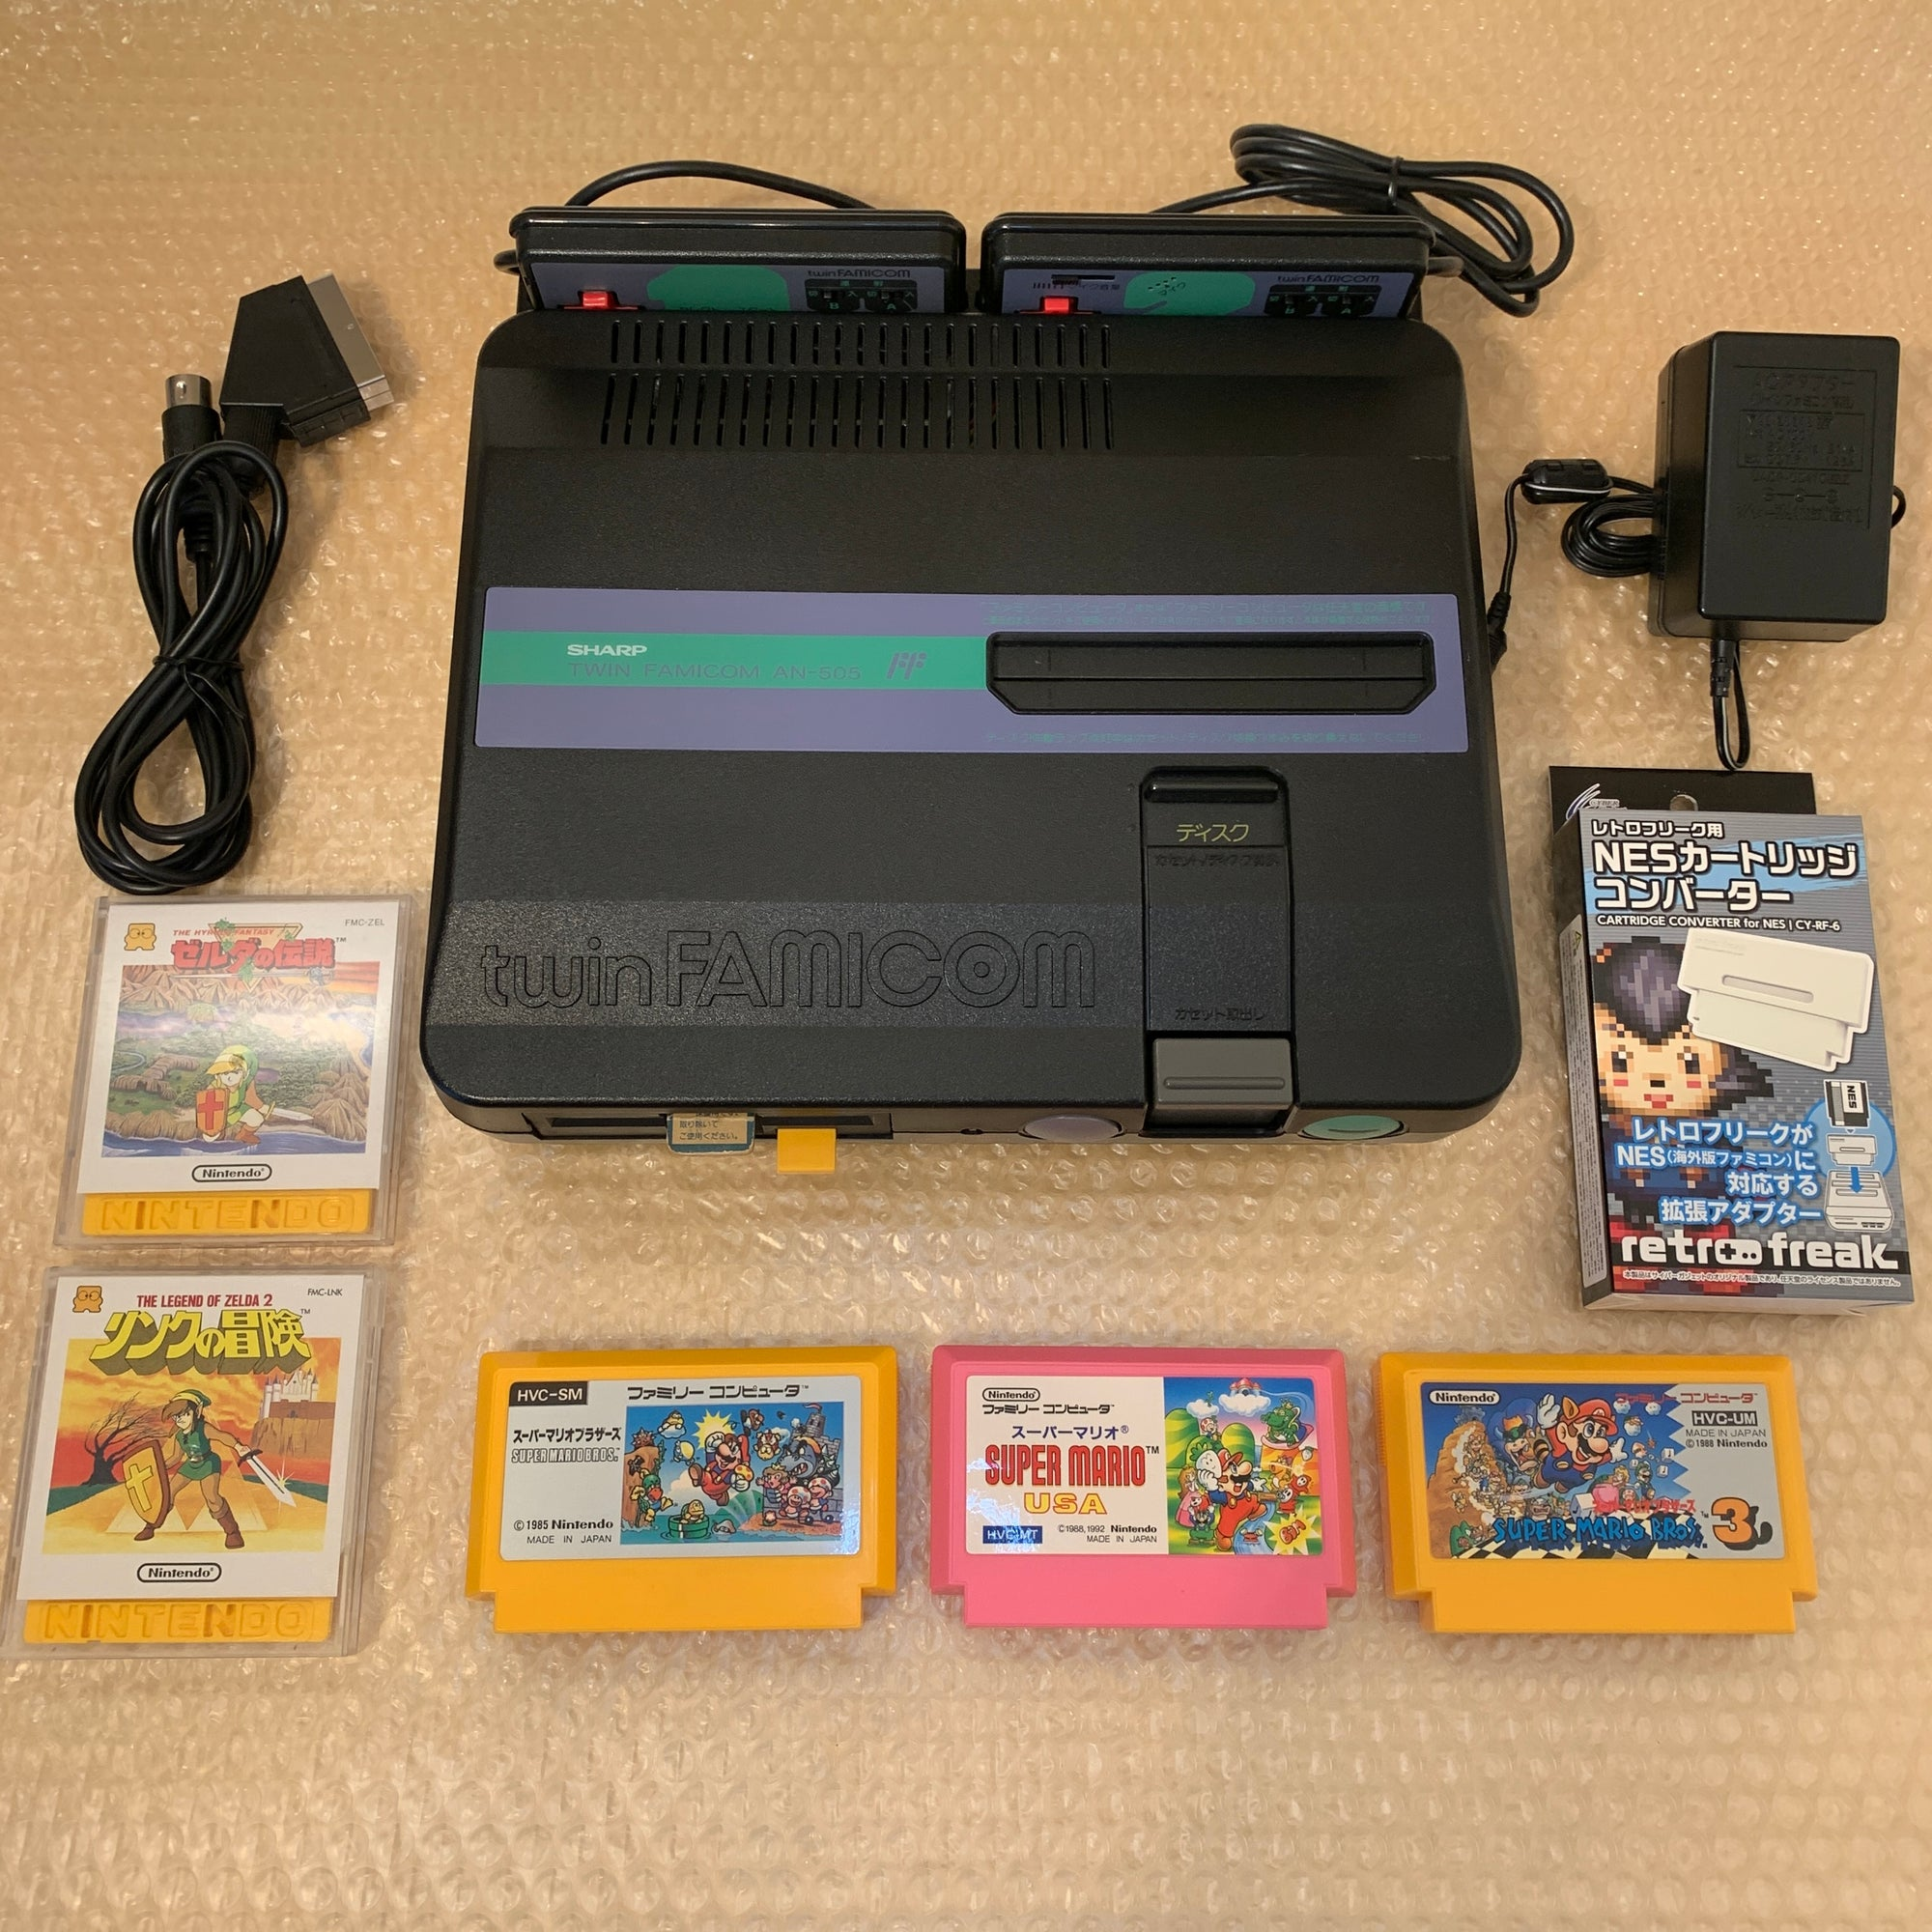 SHARP Twin Famicom set (AN-505-BK) with NESRGB kit and NES converter